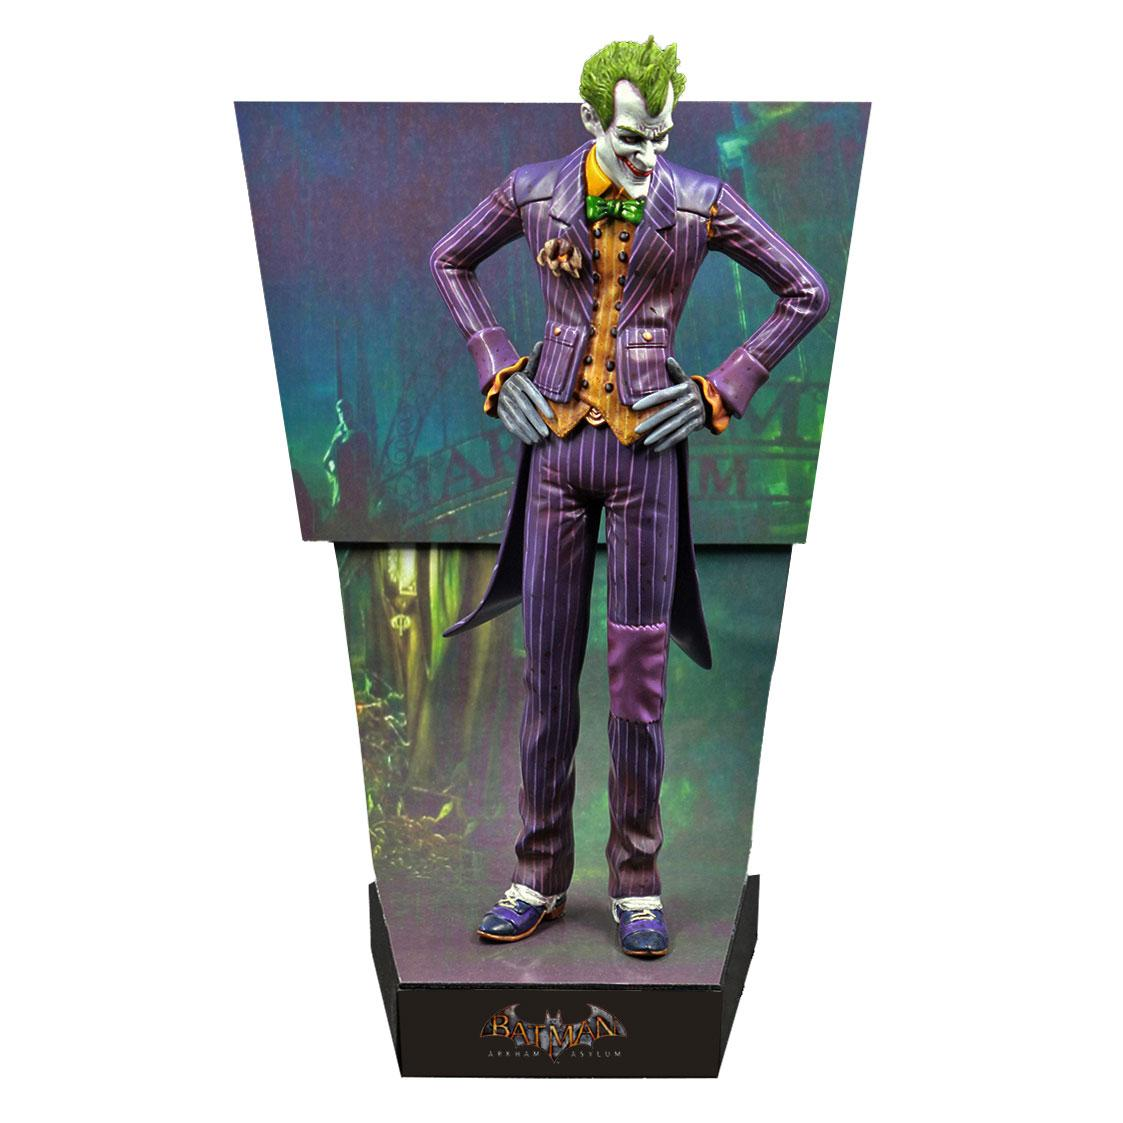 Batman Arkham Asylum Premium Motion Statue The Joker